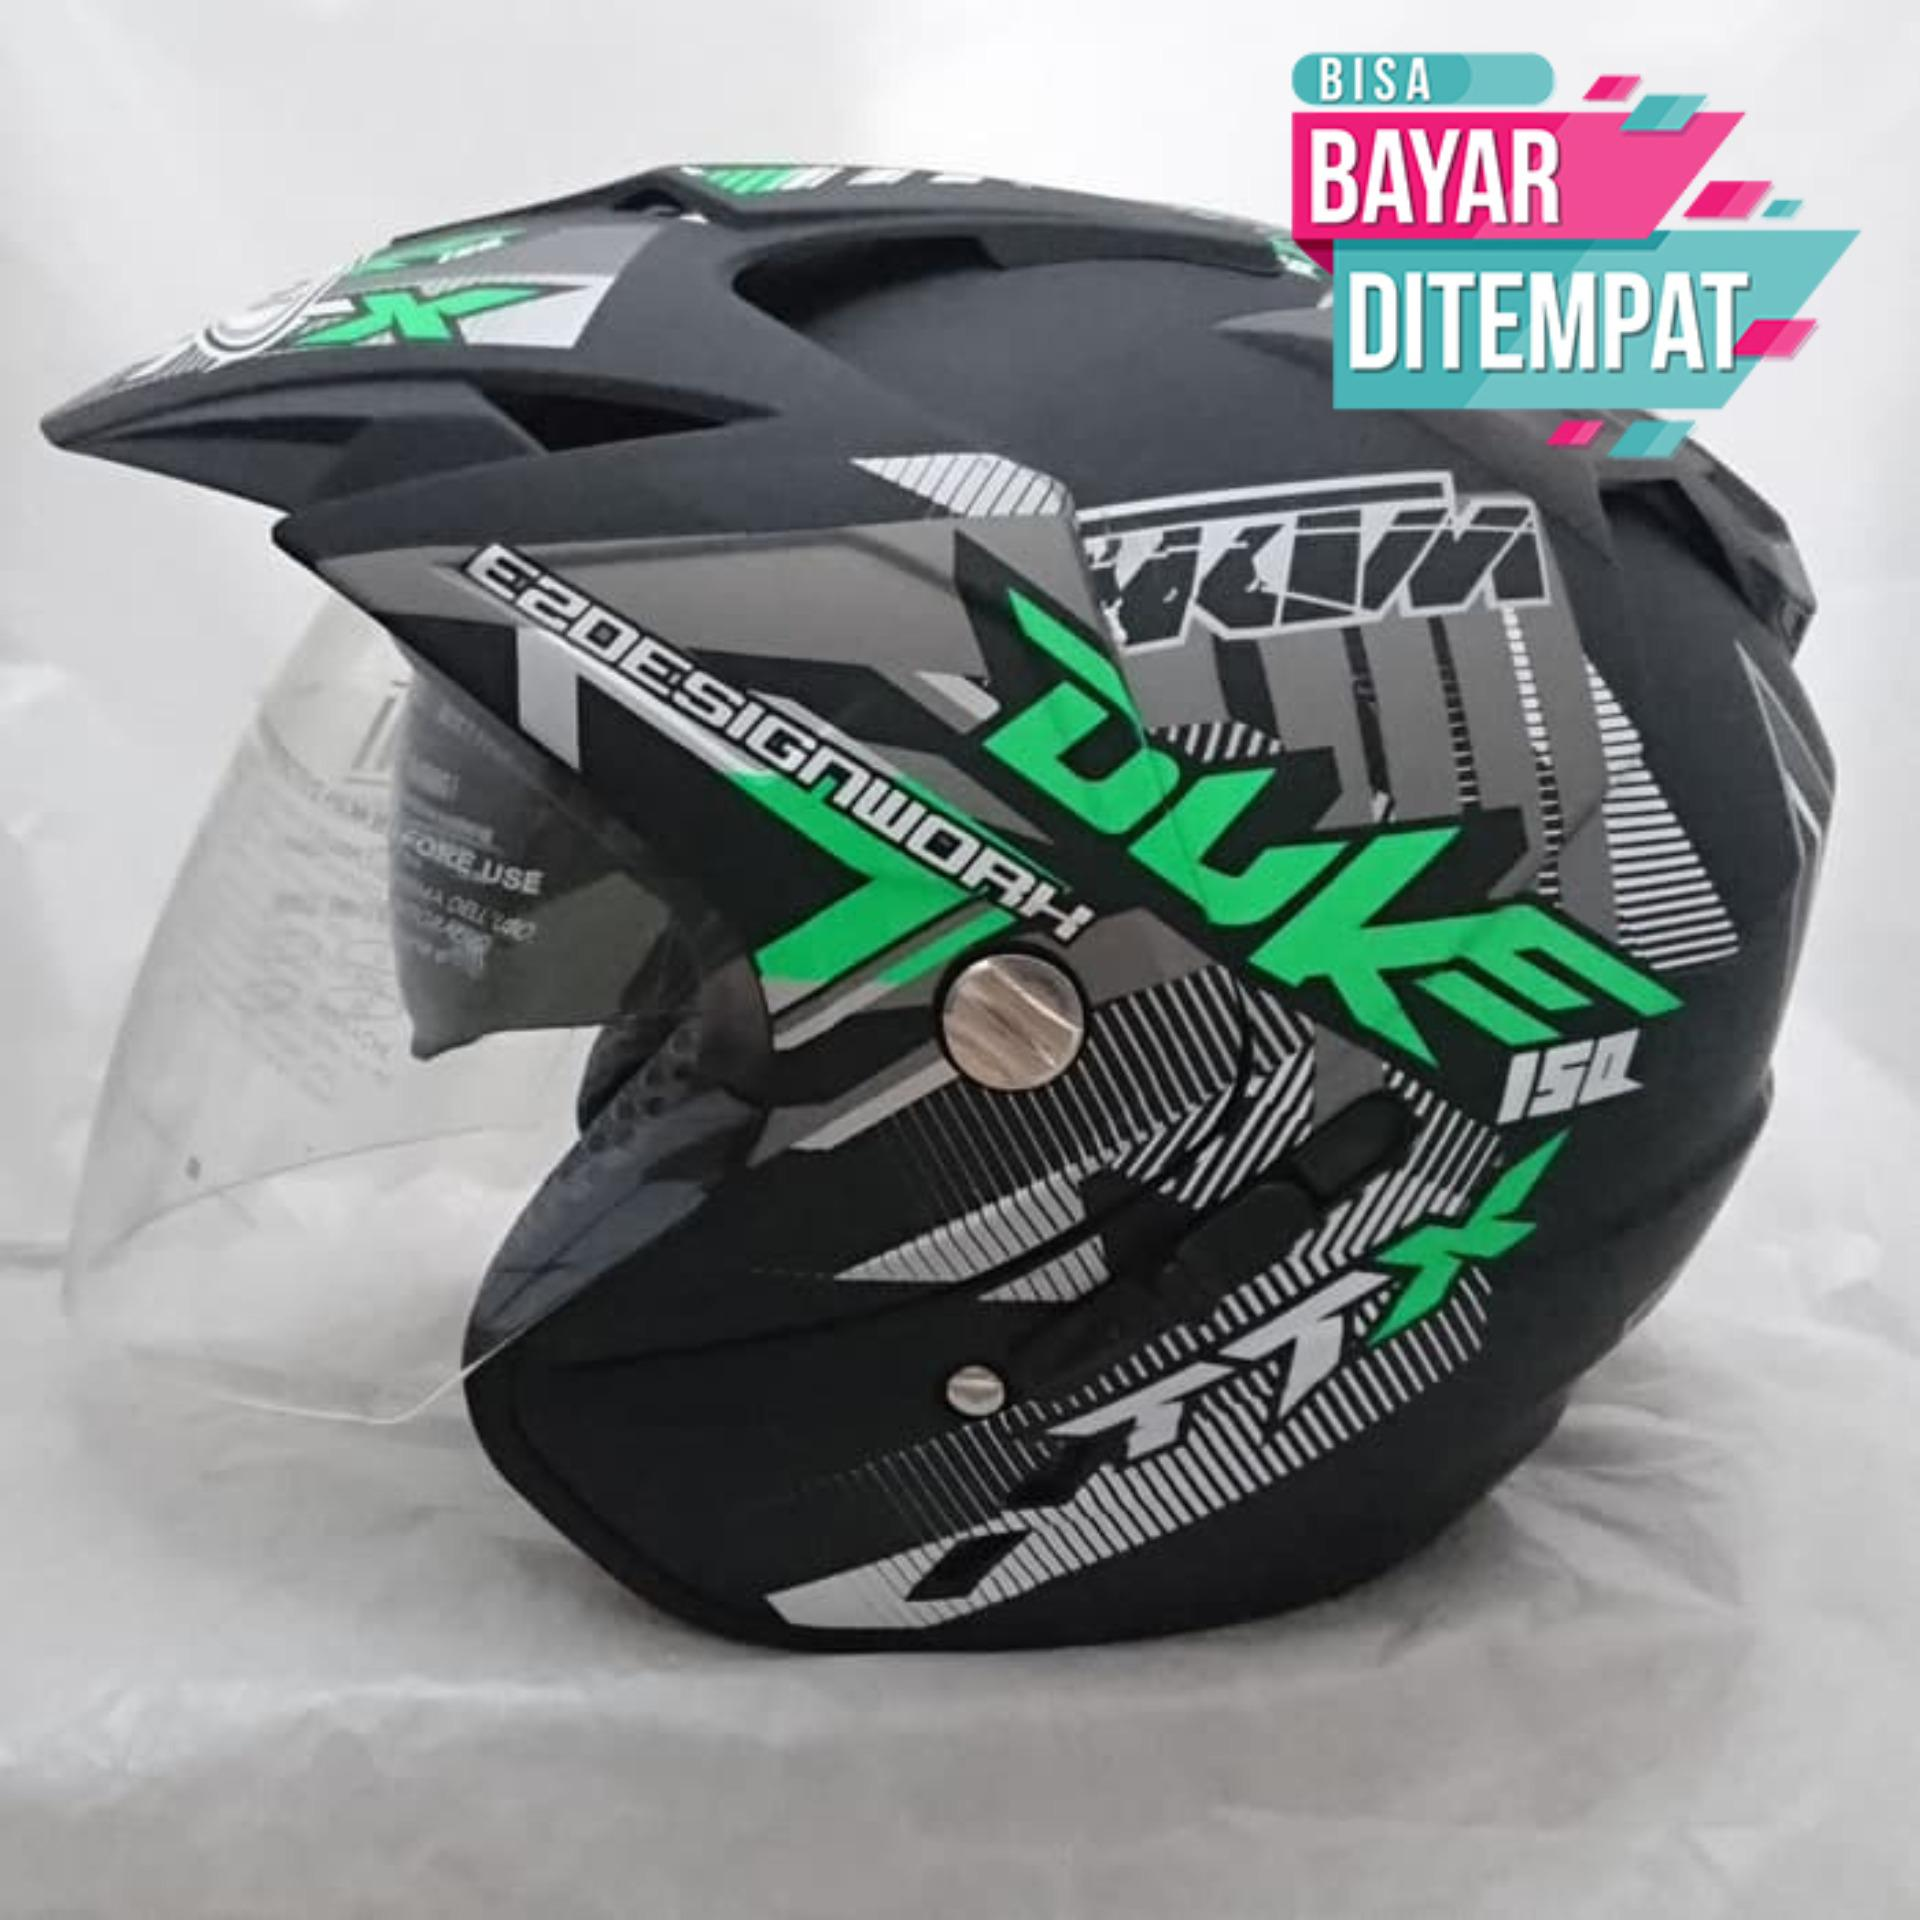 [Promo Best Seller] Helm DMN BXP 2 kaca double visor duke black doff green Kualitas Setara helm KYT INK GM WTO MSR BMC NHK